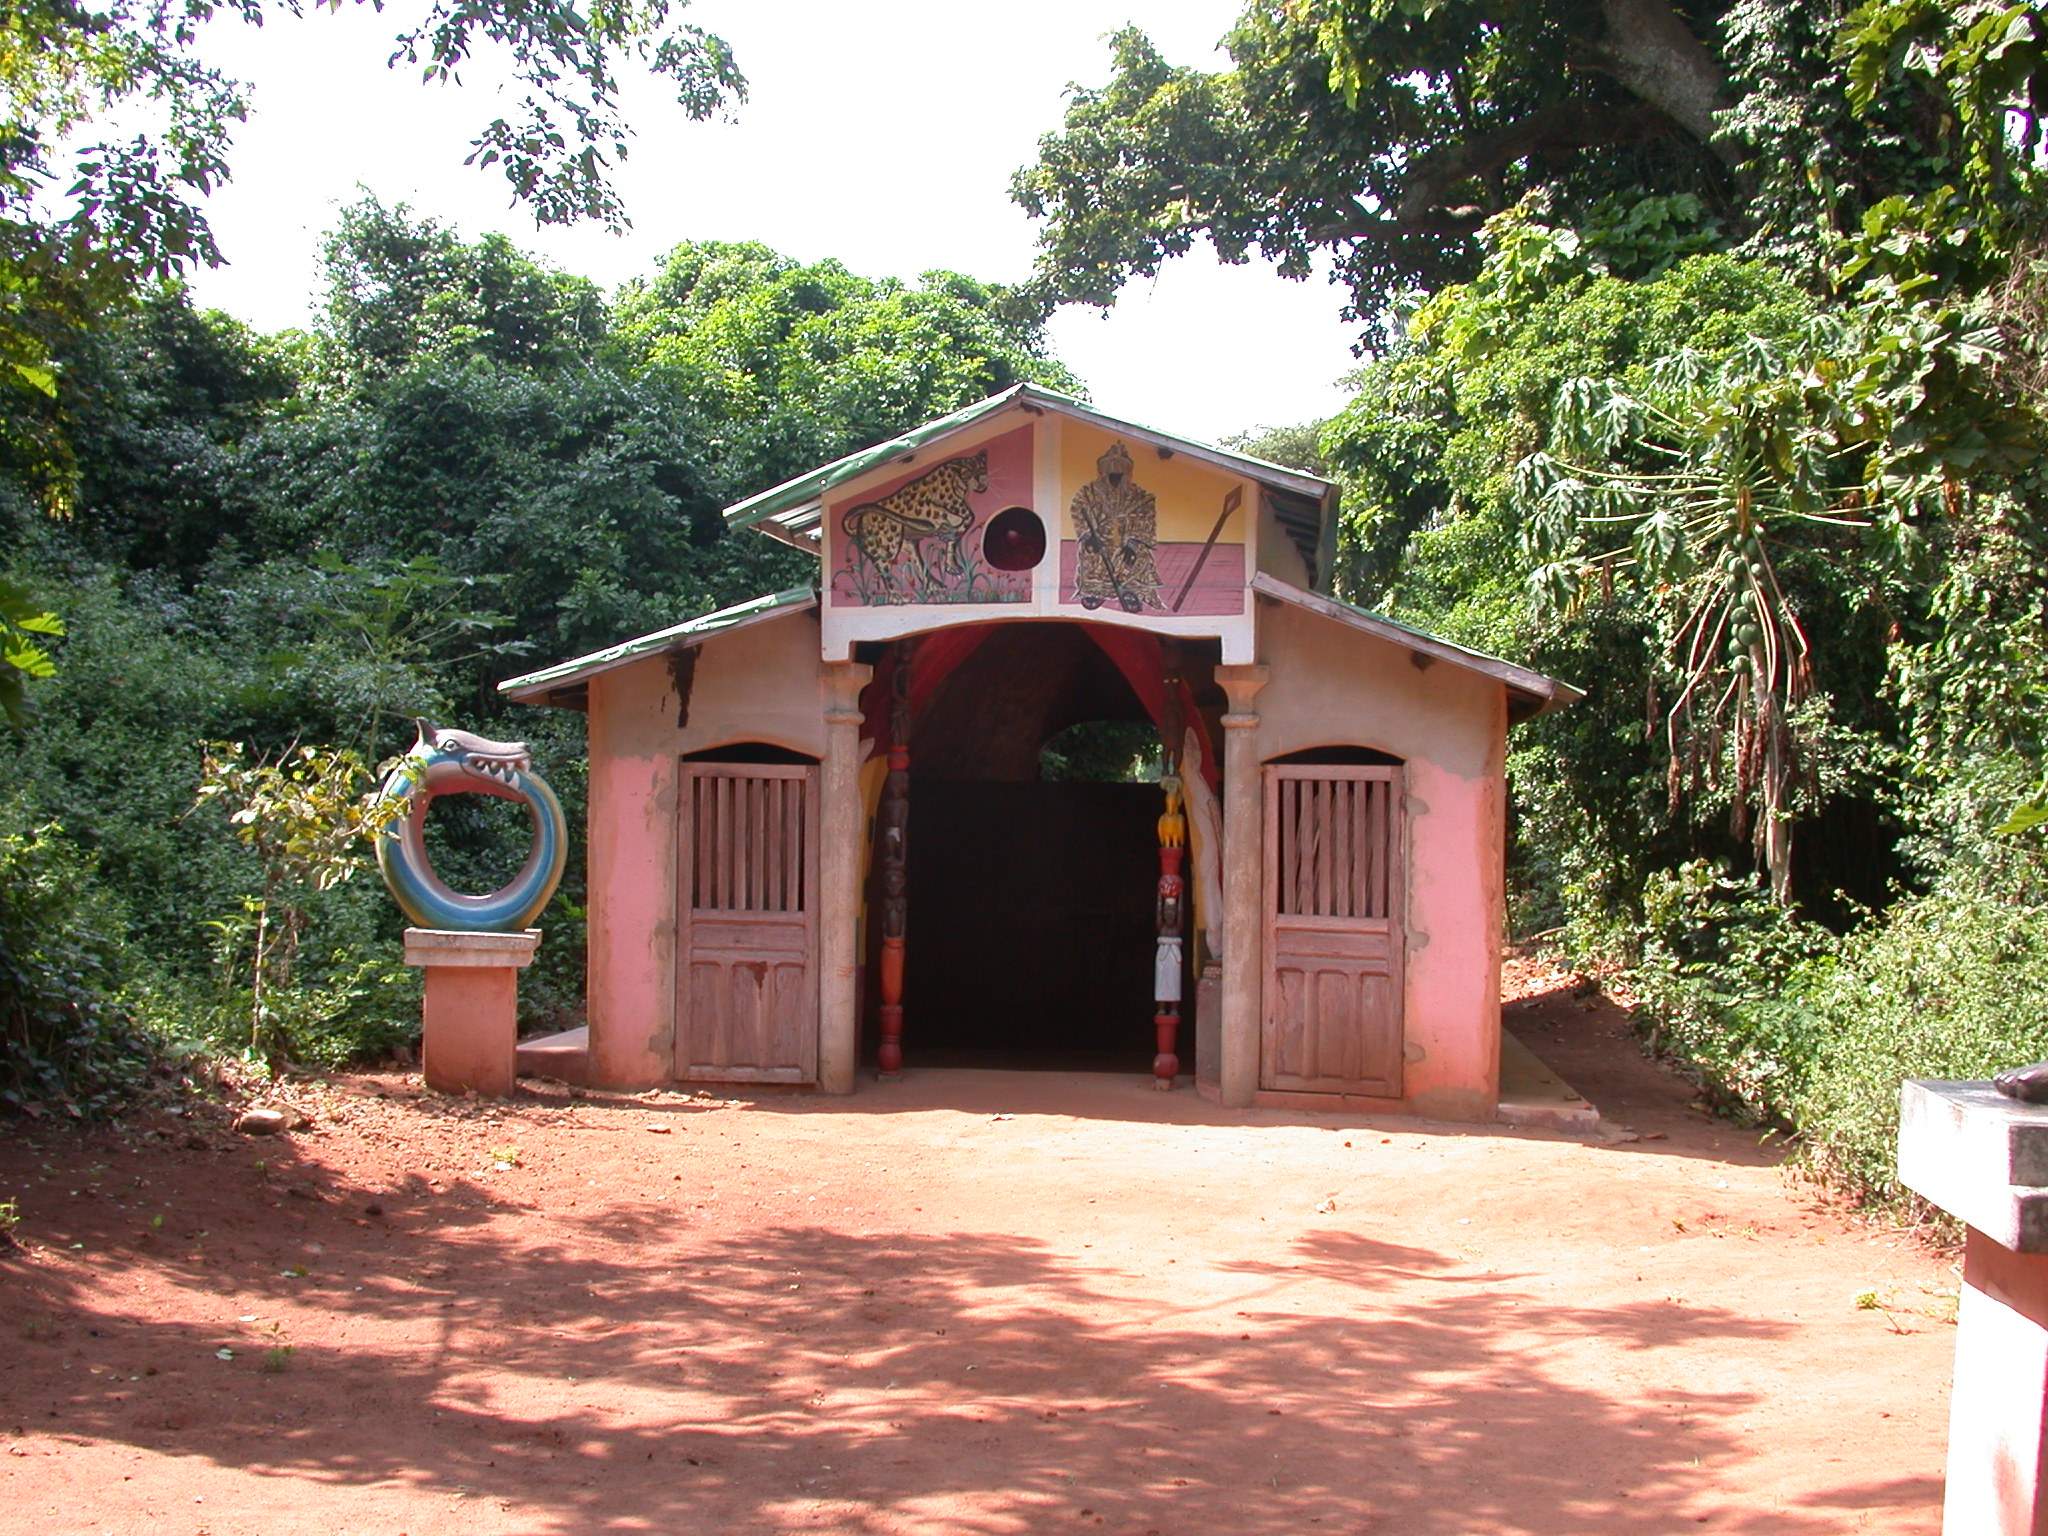 Shrine House With Dan Rainbow Serpent Sculpture on Left, Kpasse Sacred Forest, Ouidah, Benin